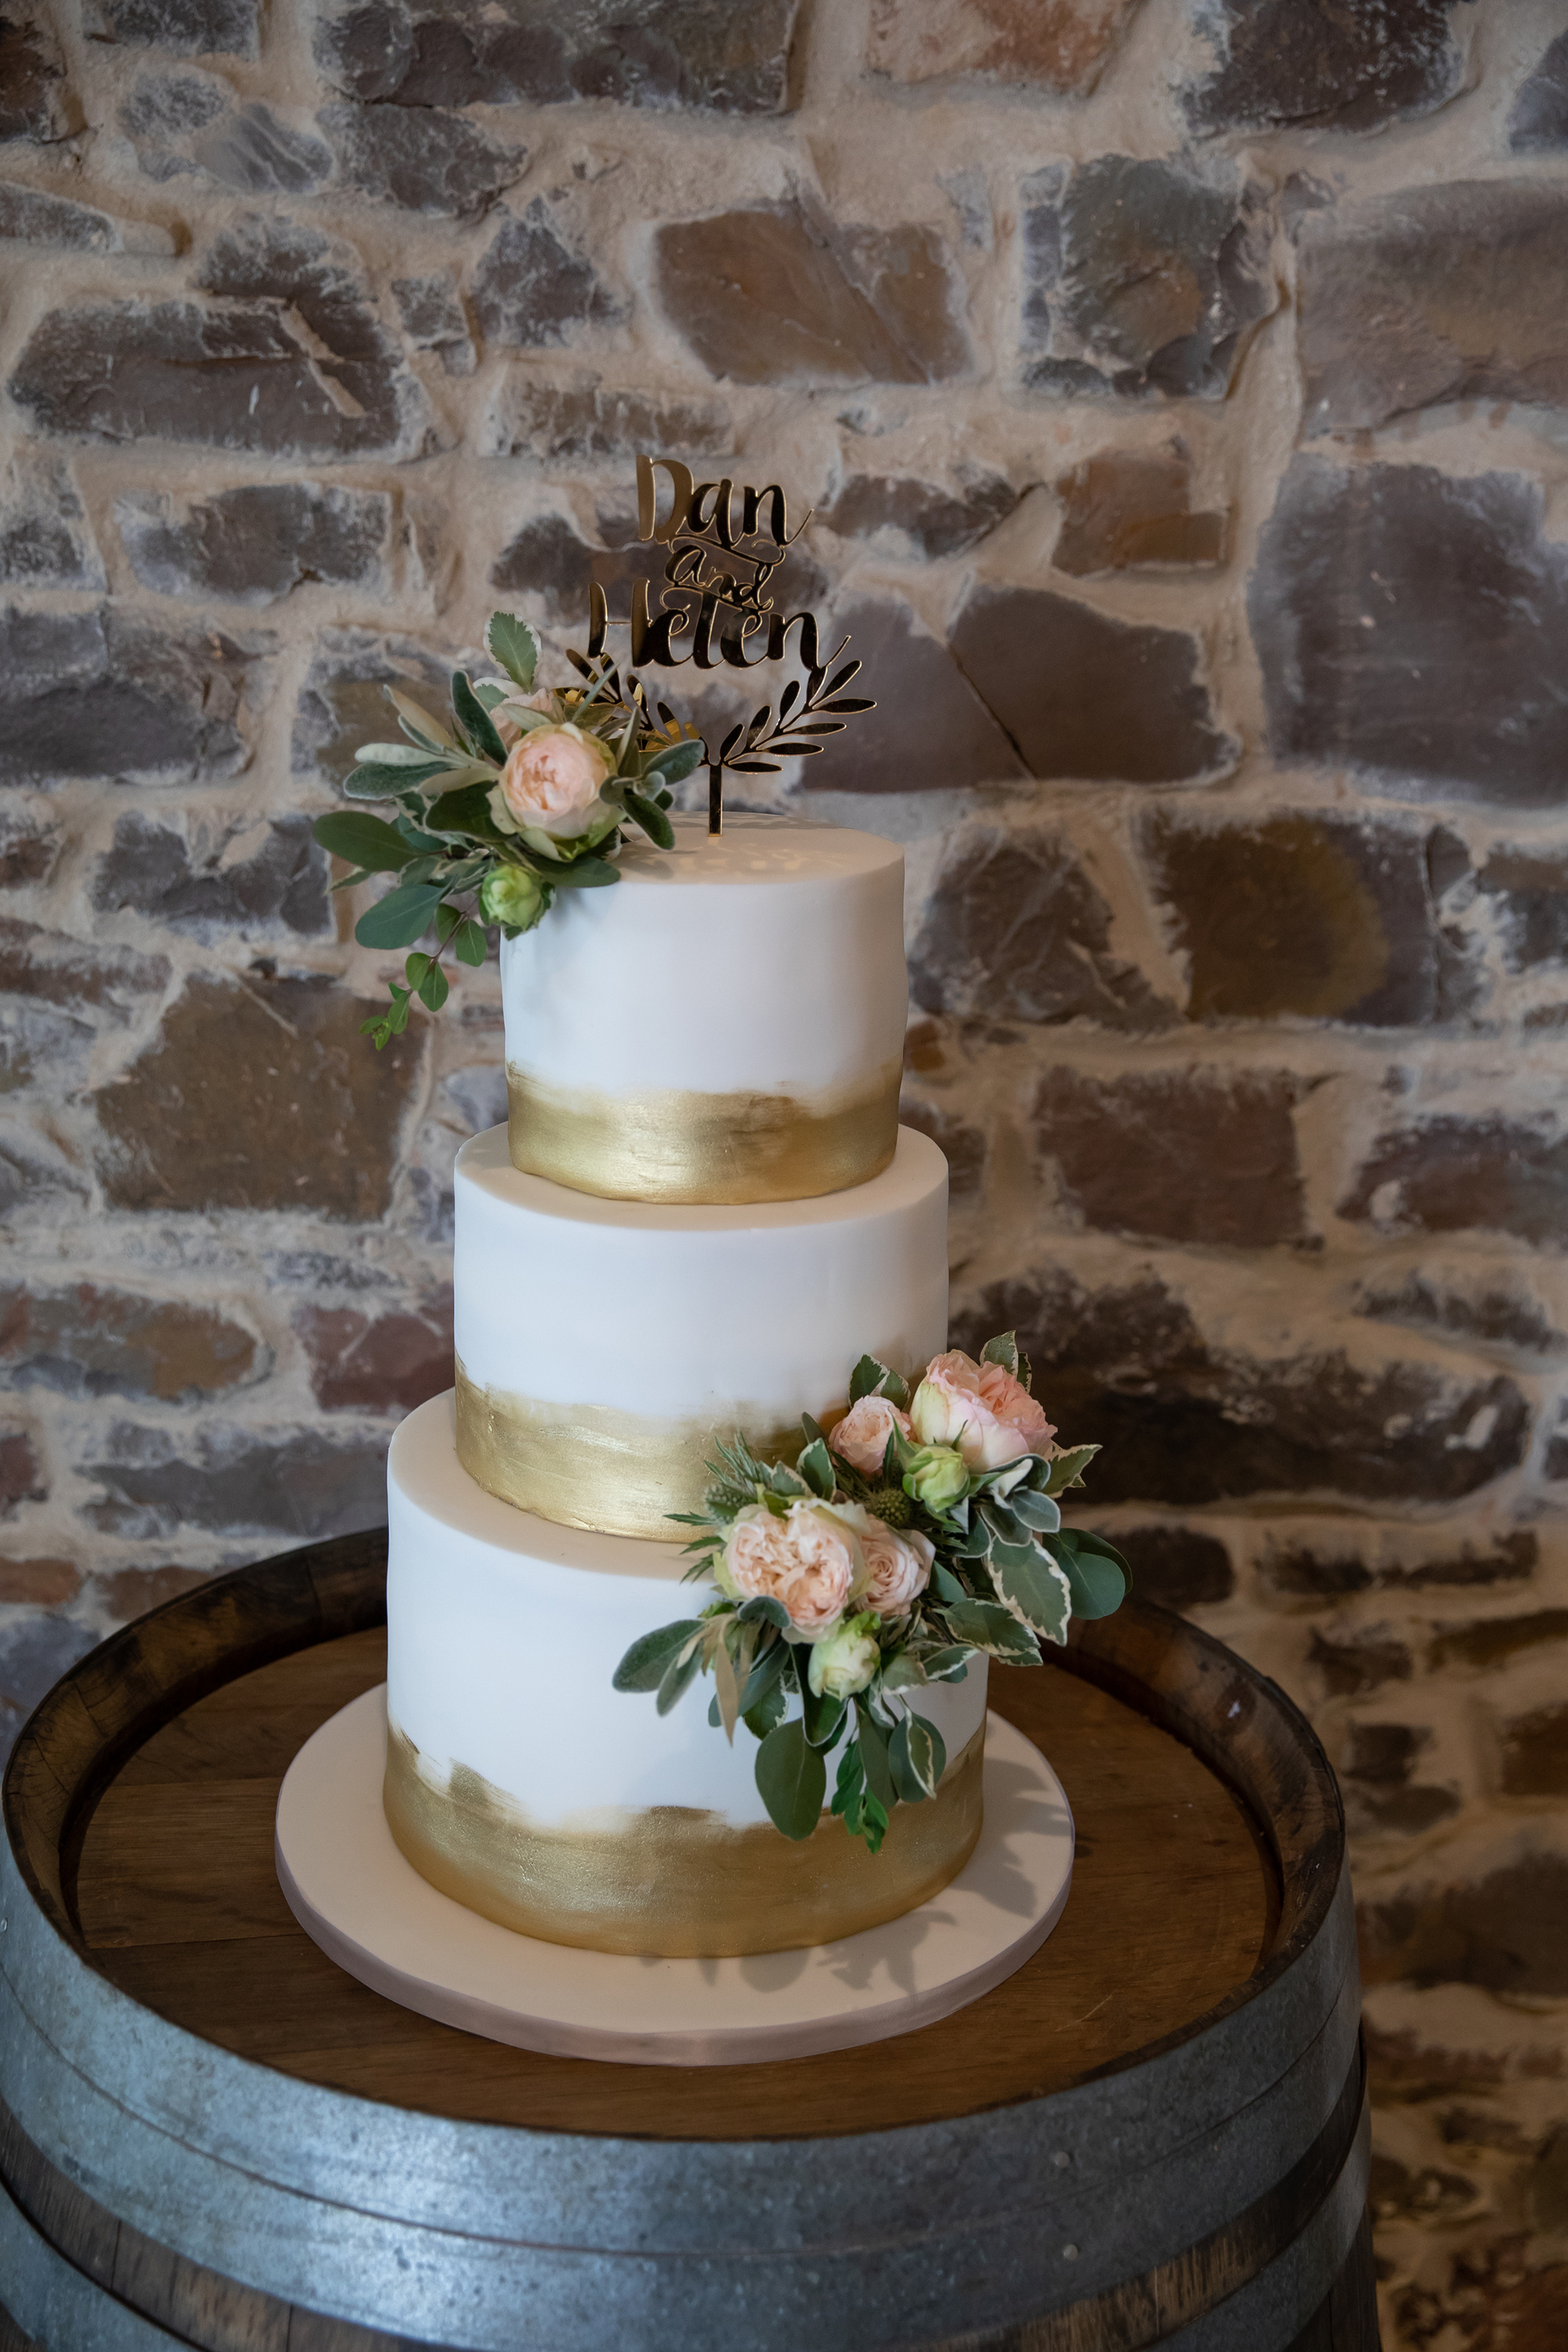 Gold and ivory brush work wedding cake with gold text name topper decorated with fresh flowers